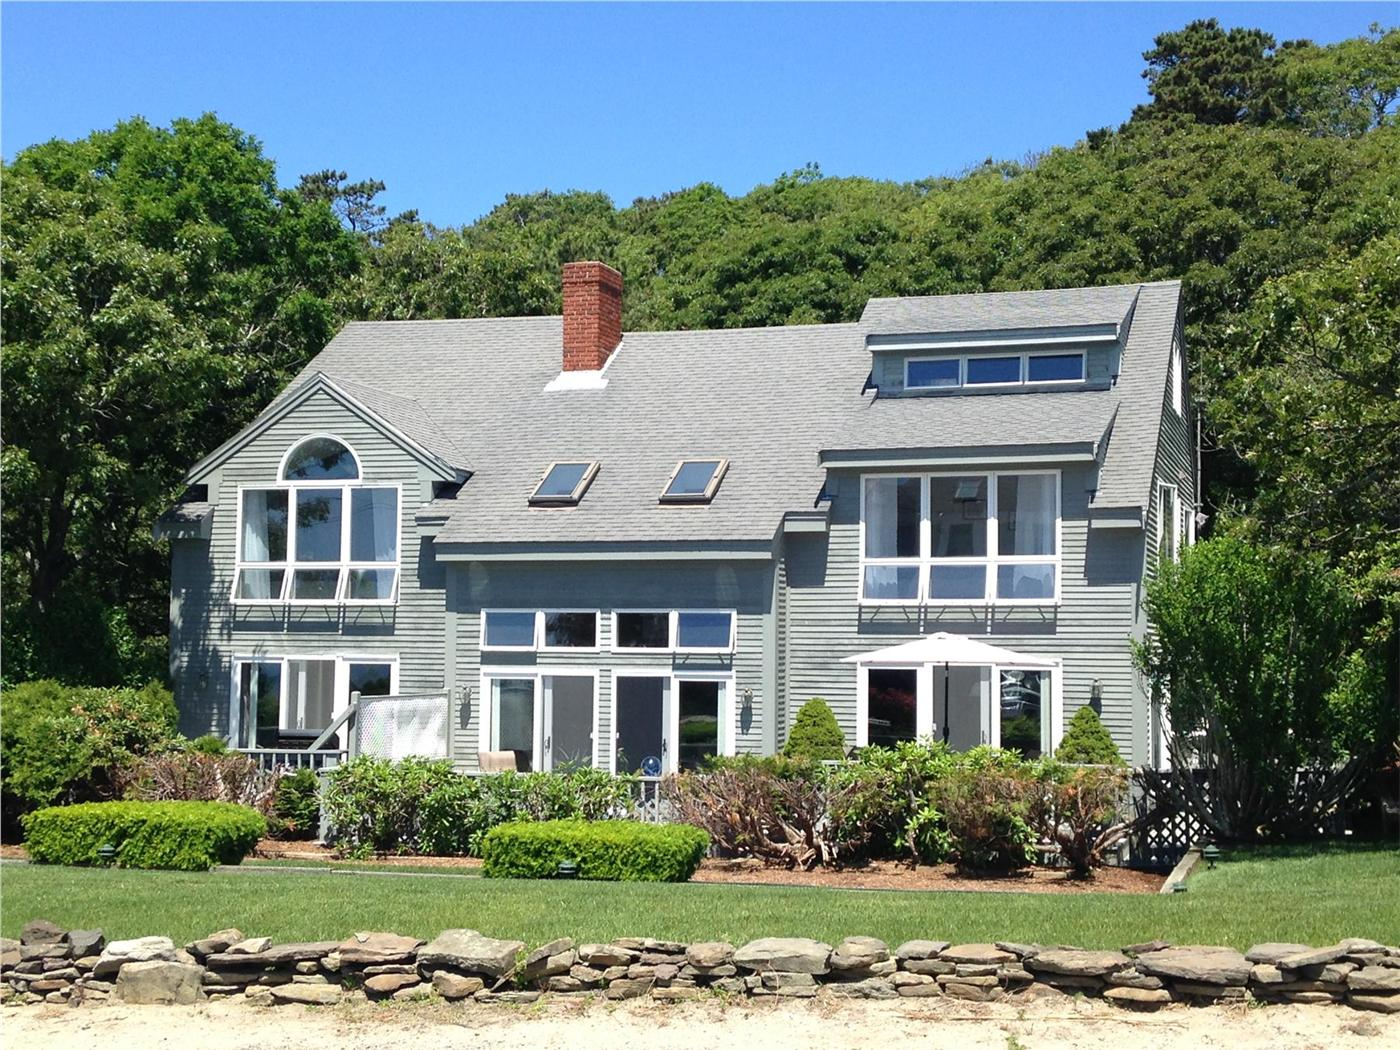 provincetown places in ma pin cottages favorite